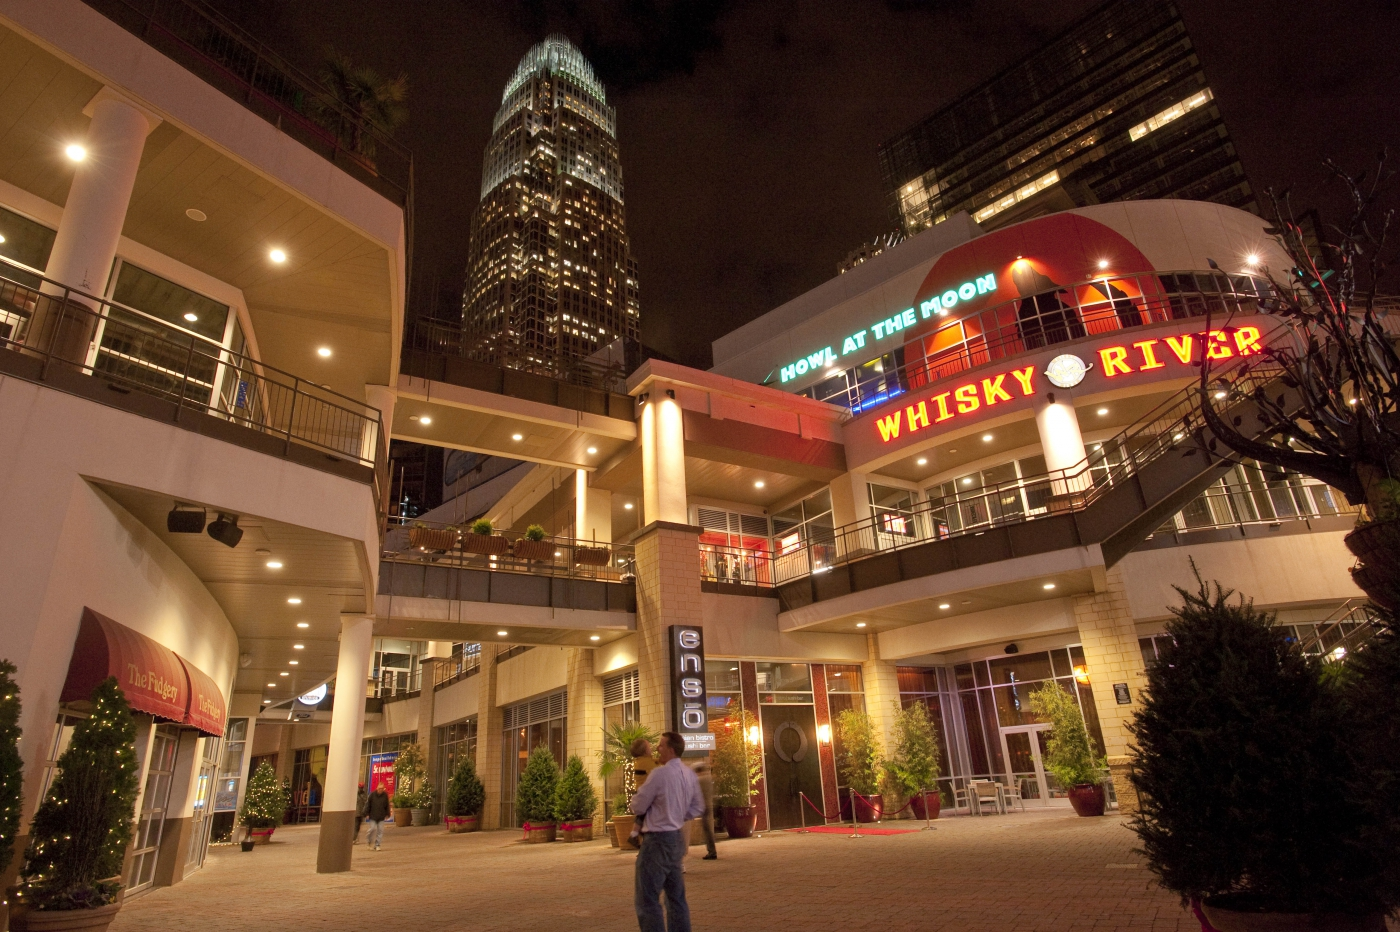 The EpiCentre is an entertainment hub in Uptown Charlotte that features restaurants, nightclubs, bowling, movies and more.